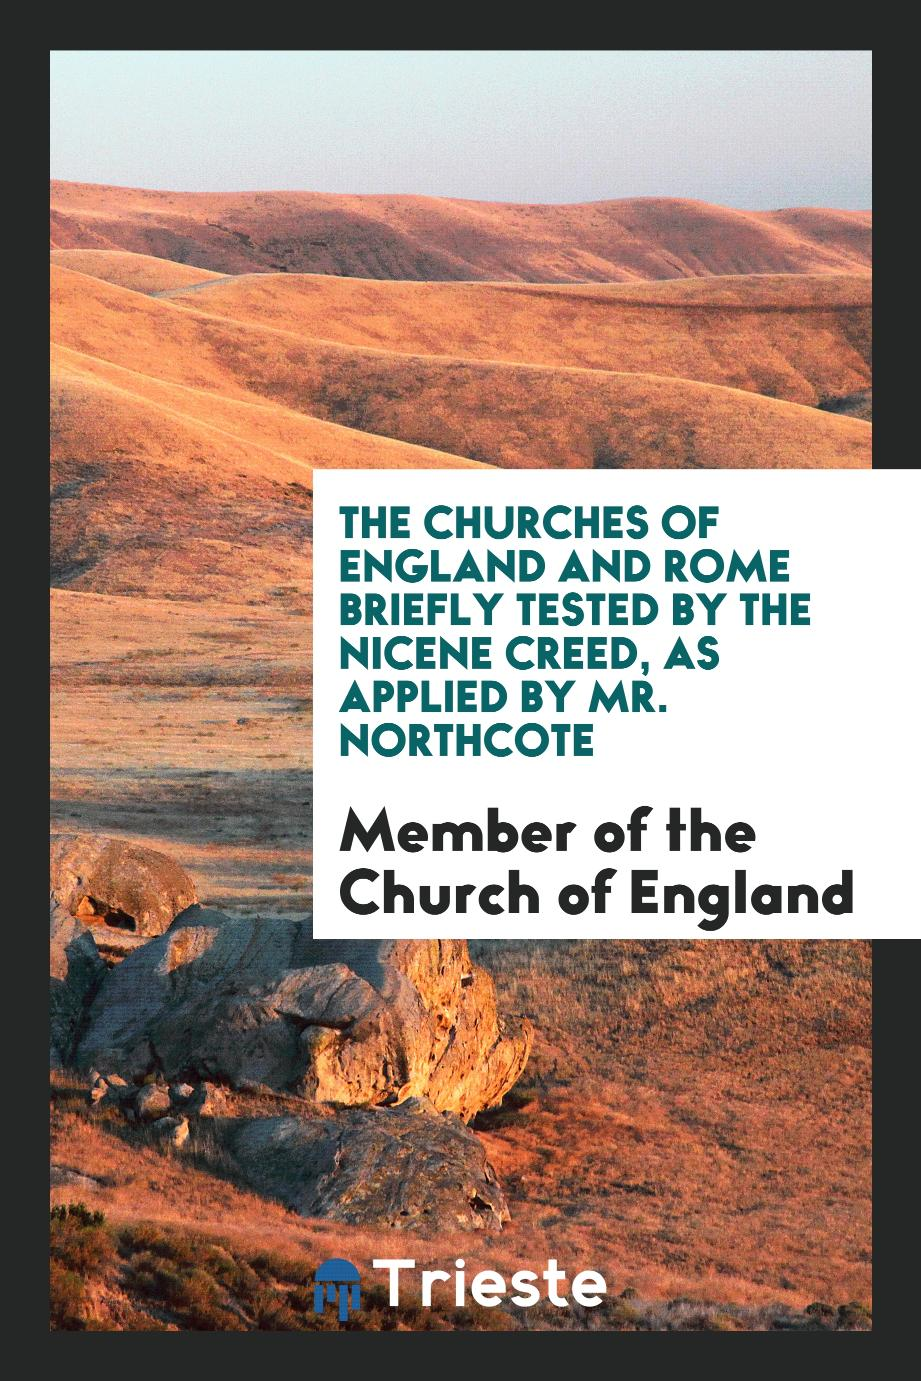 The Churches of England and Rome Briefly Tested by the Nicene Creed, As Applied by Mr. Northcote